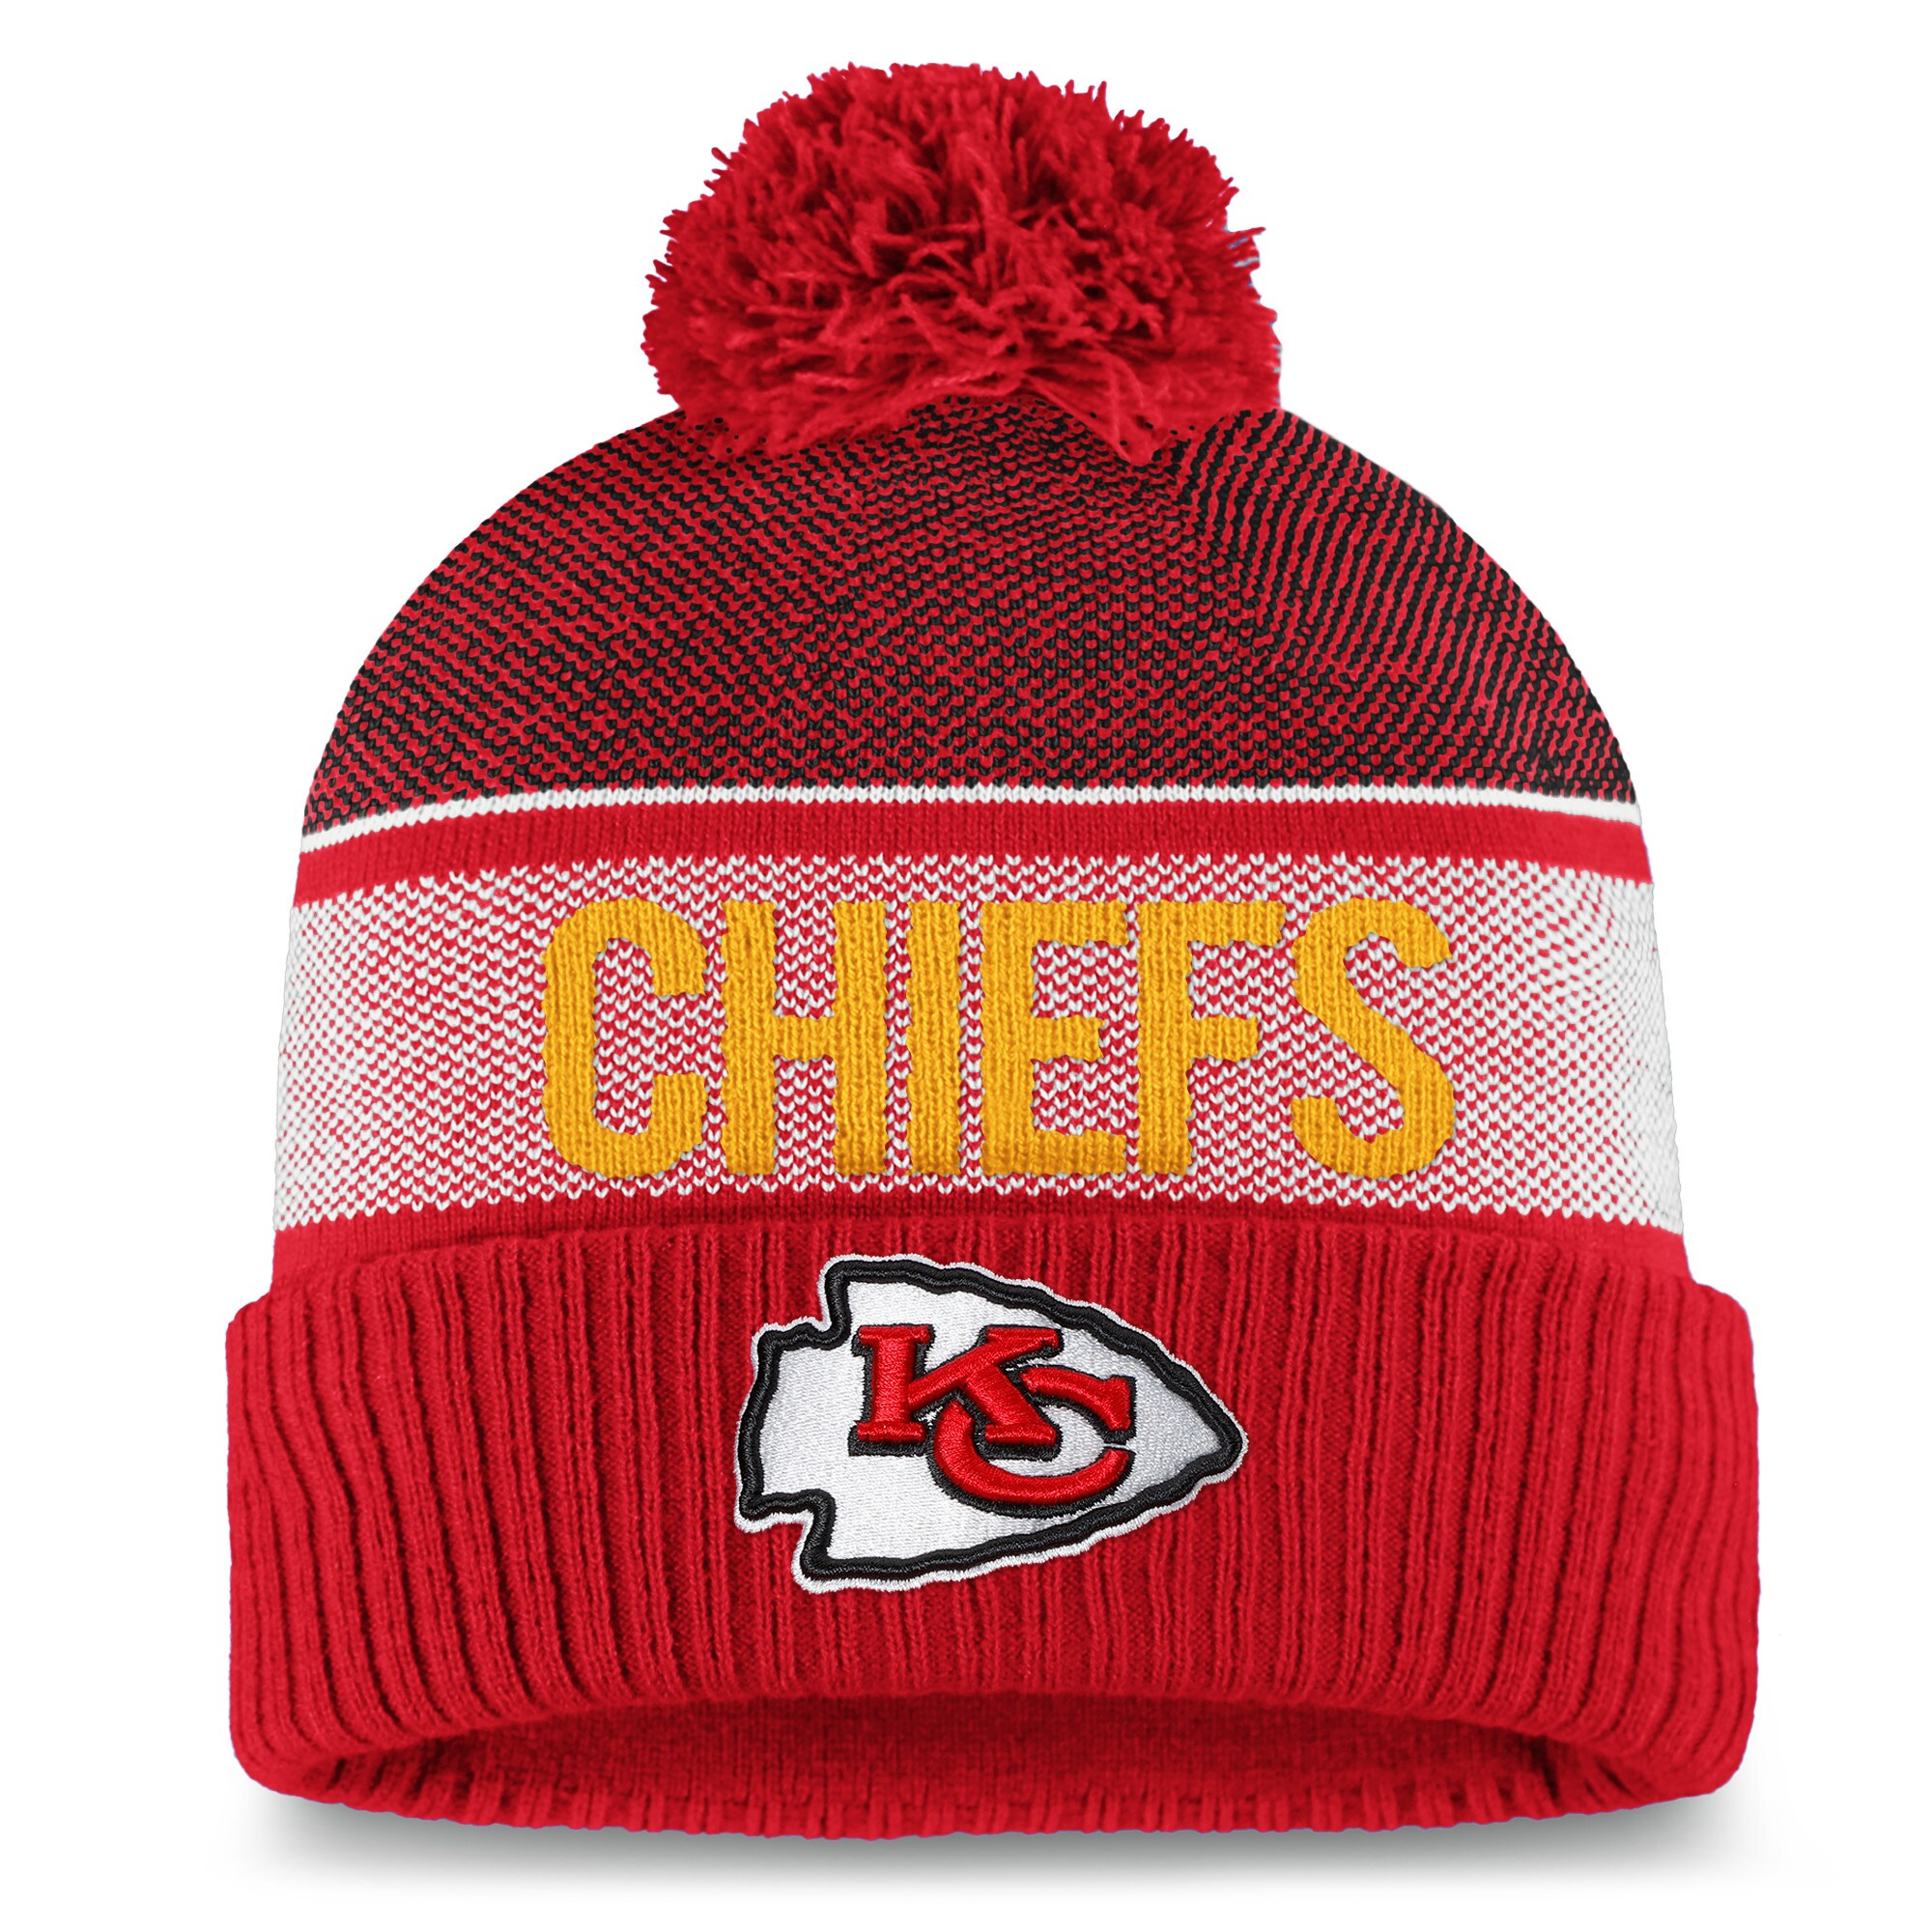 Kansas City Chiefs NFL Pro Line by Fanatics Branded Details Cuffed Pom Knit Hat - Red